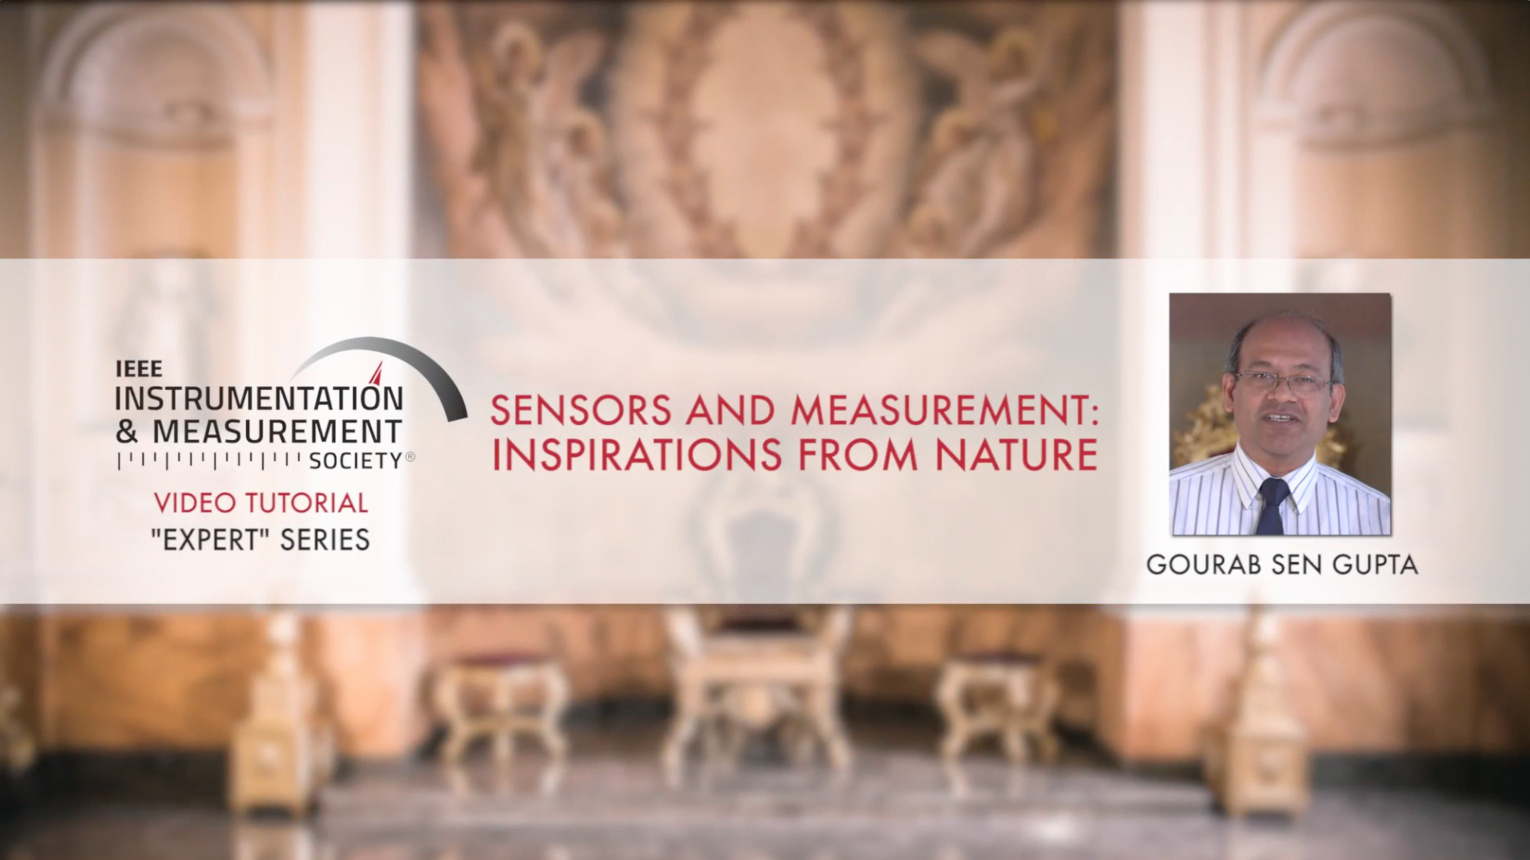 Sensors and Measurement: Inspirations from Nature - Tutorial by Gourab Sen Gupta